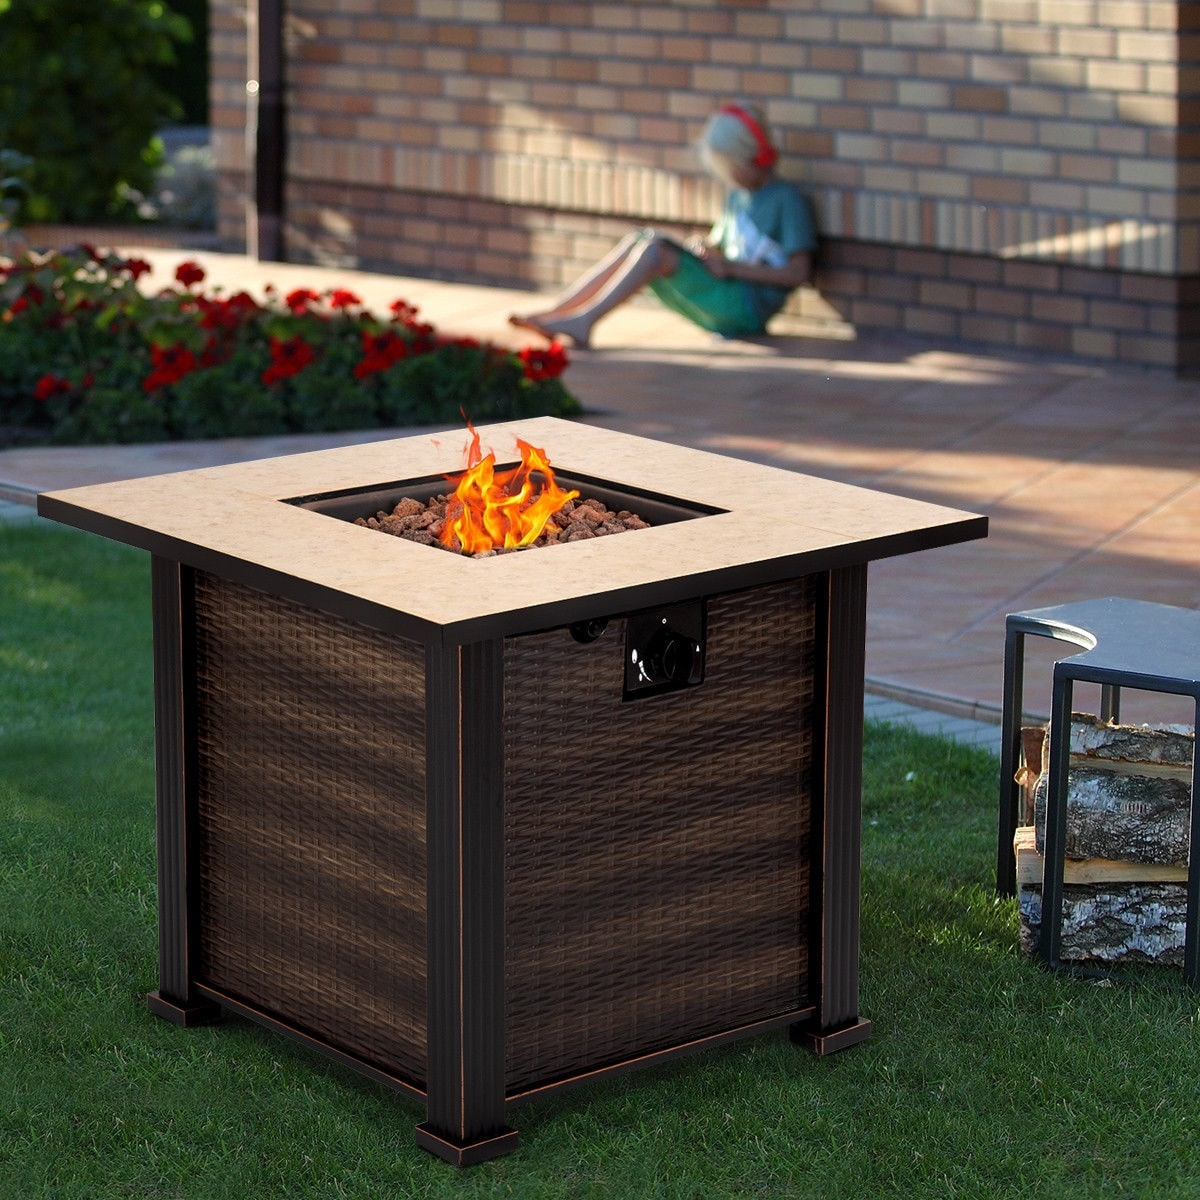 Costway 30 Square Propane Gas Fire Pit 50000 Btus Heater Outdoor Table Fireplace Cover Brown Free Shipping Today 23554029